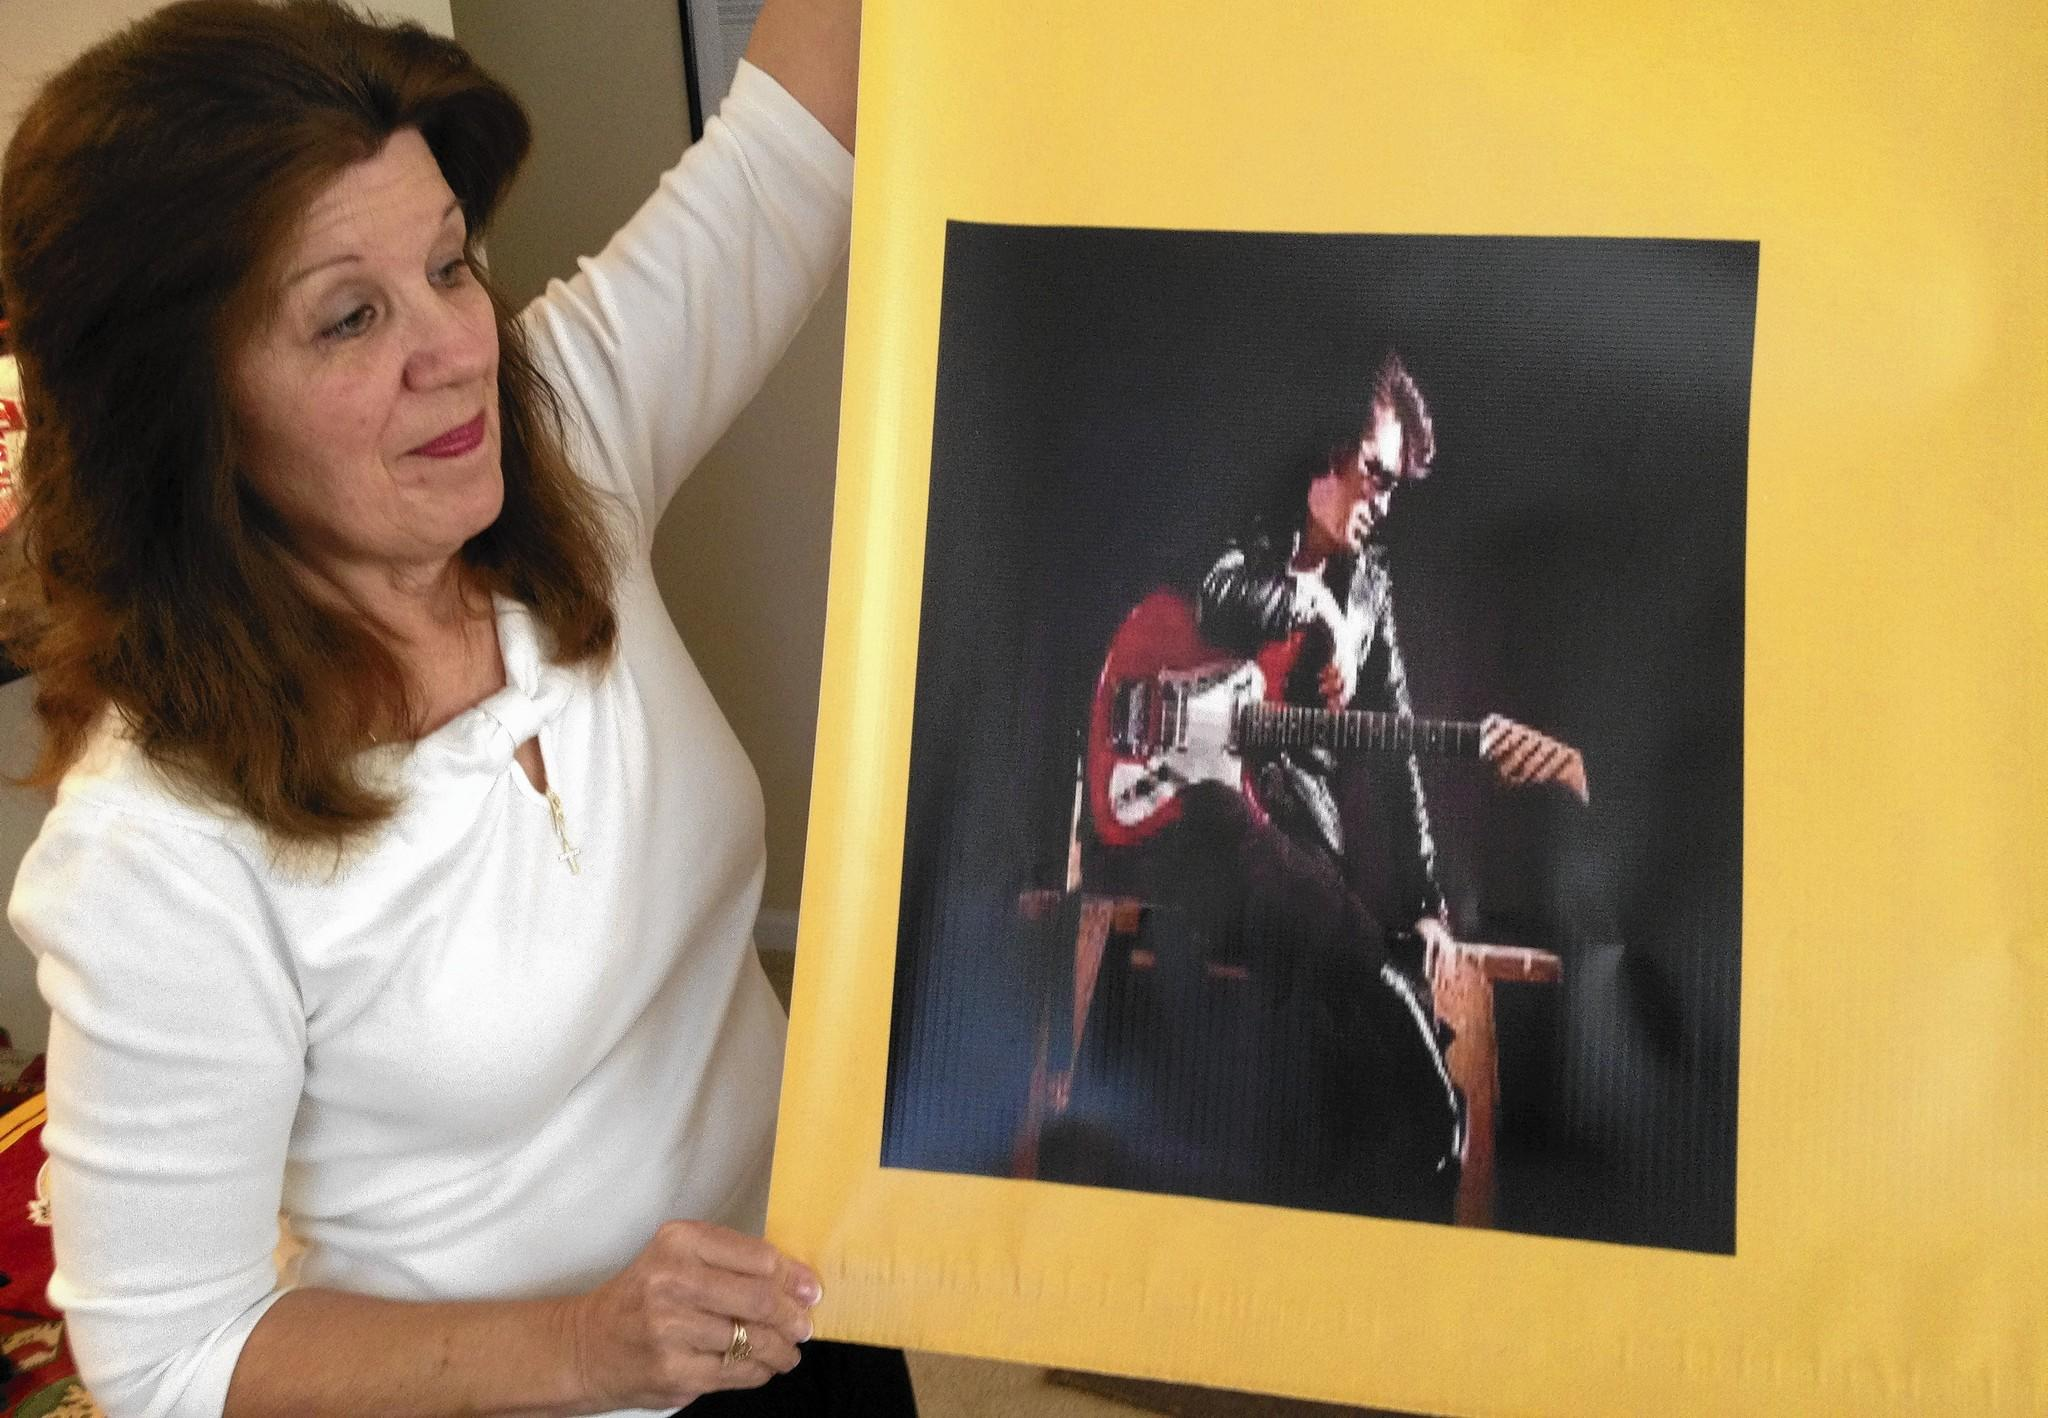 Beth Wray Webb holds the corner of a banner decorated with a photo of her father, guitarist Link Wray. The banner was made for the Portsmouth-based rock group Band of Tribes, which features Link Wray's grandson, Chris Webb.